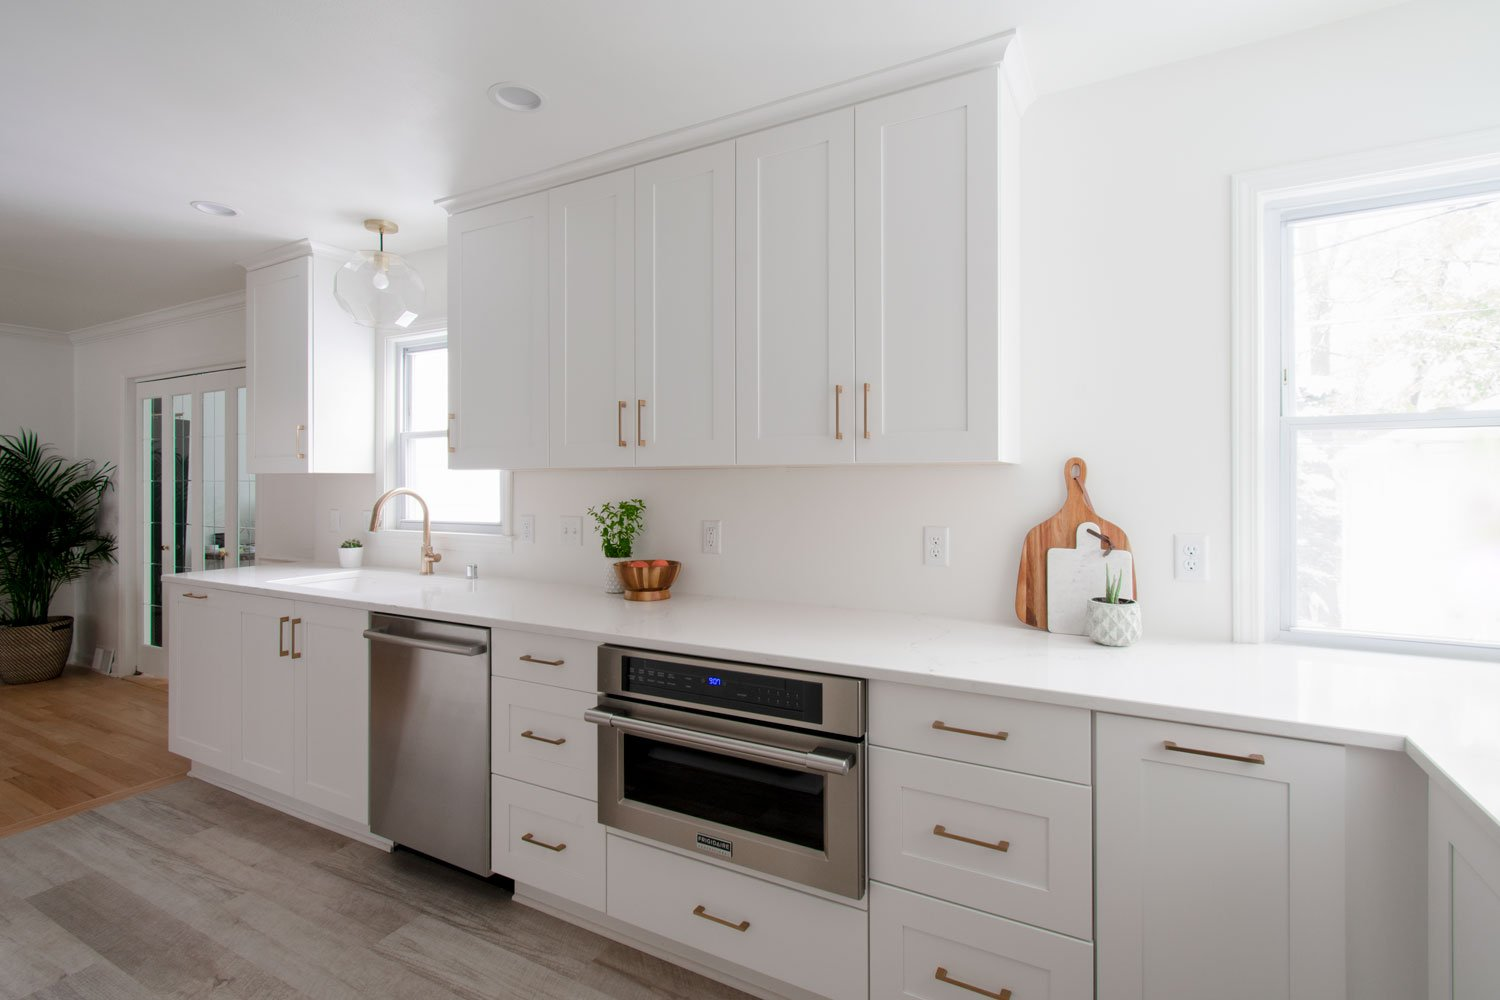 White shaker kitchen cabinetry with bronze hardware